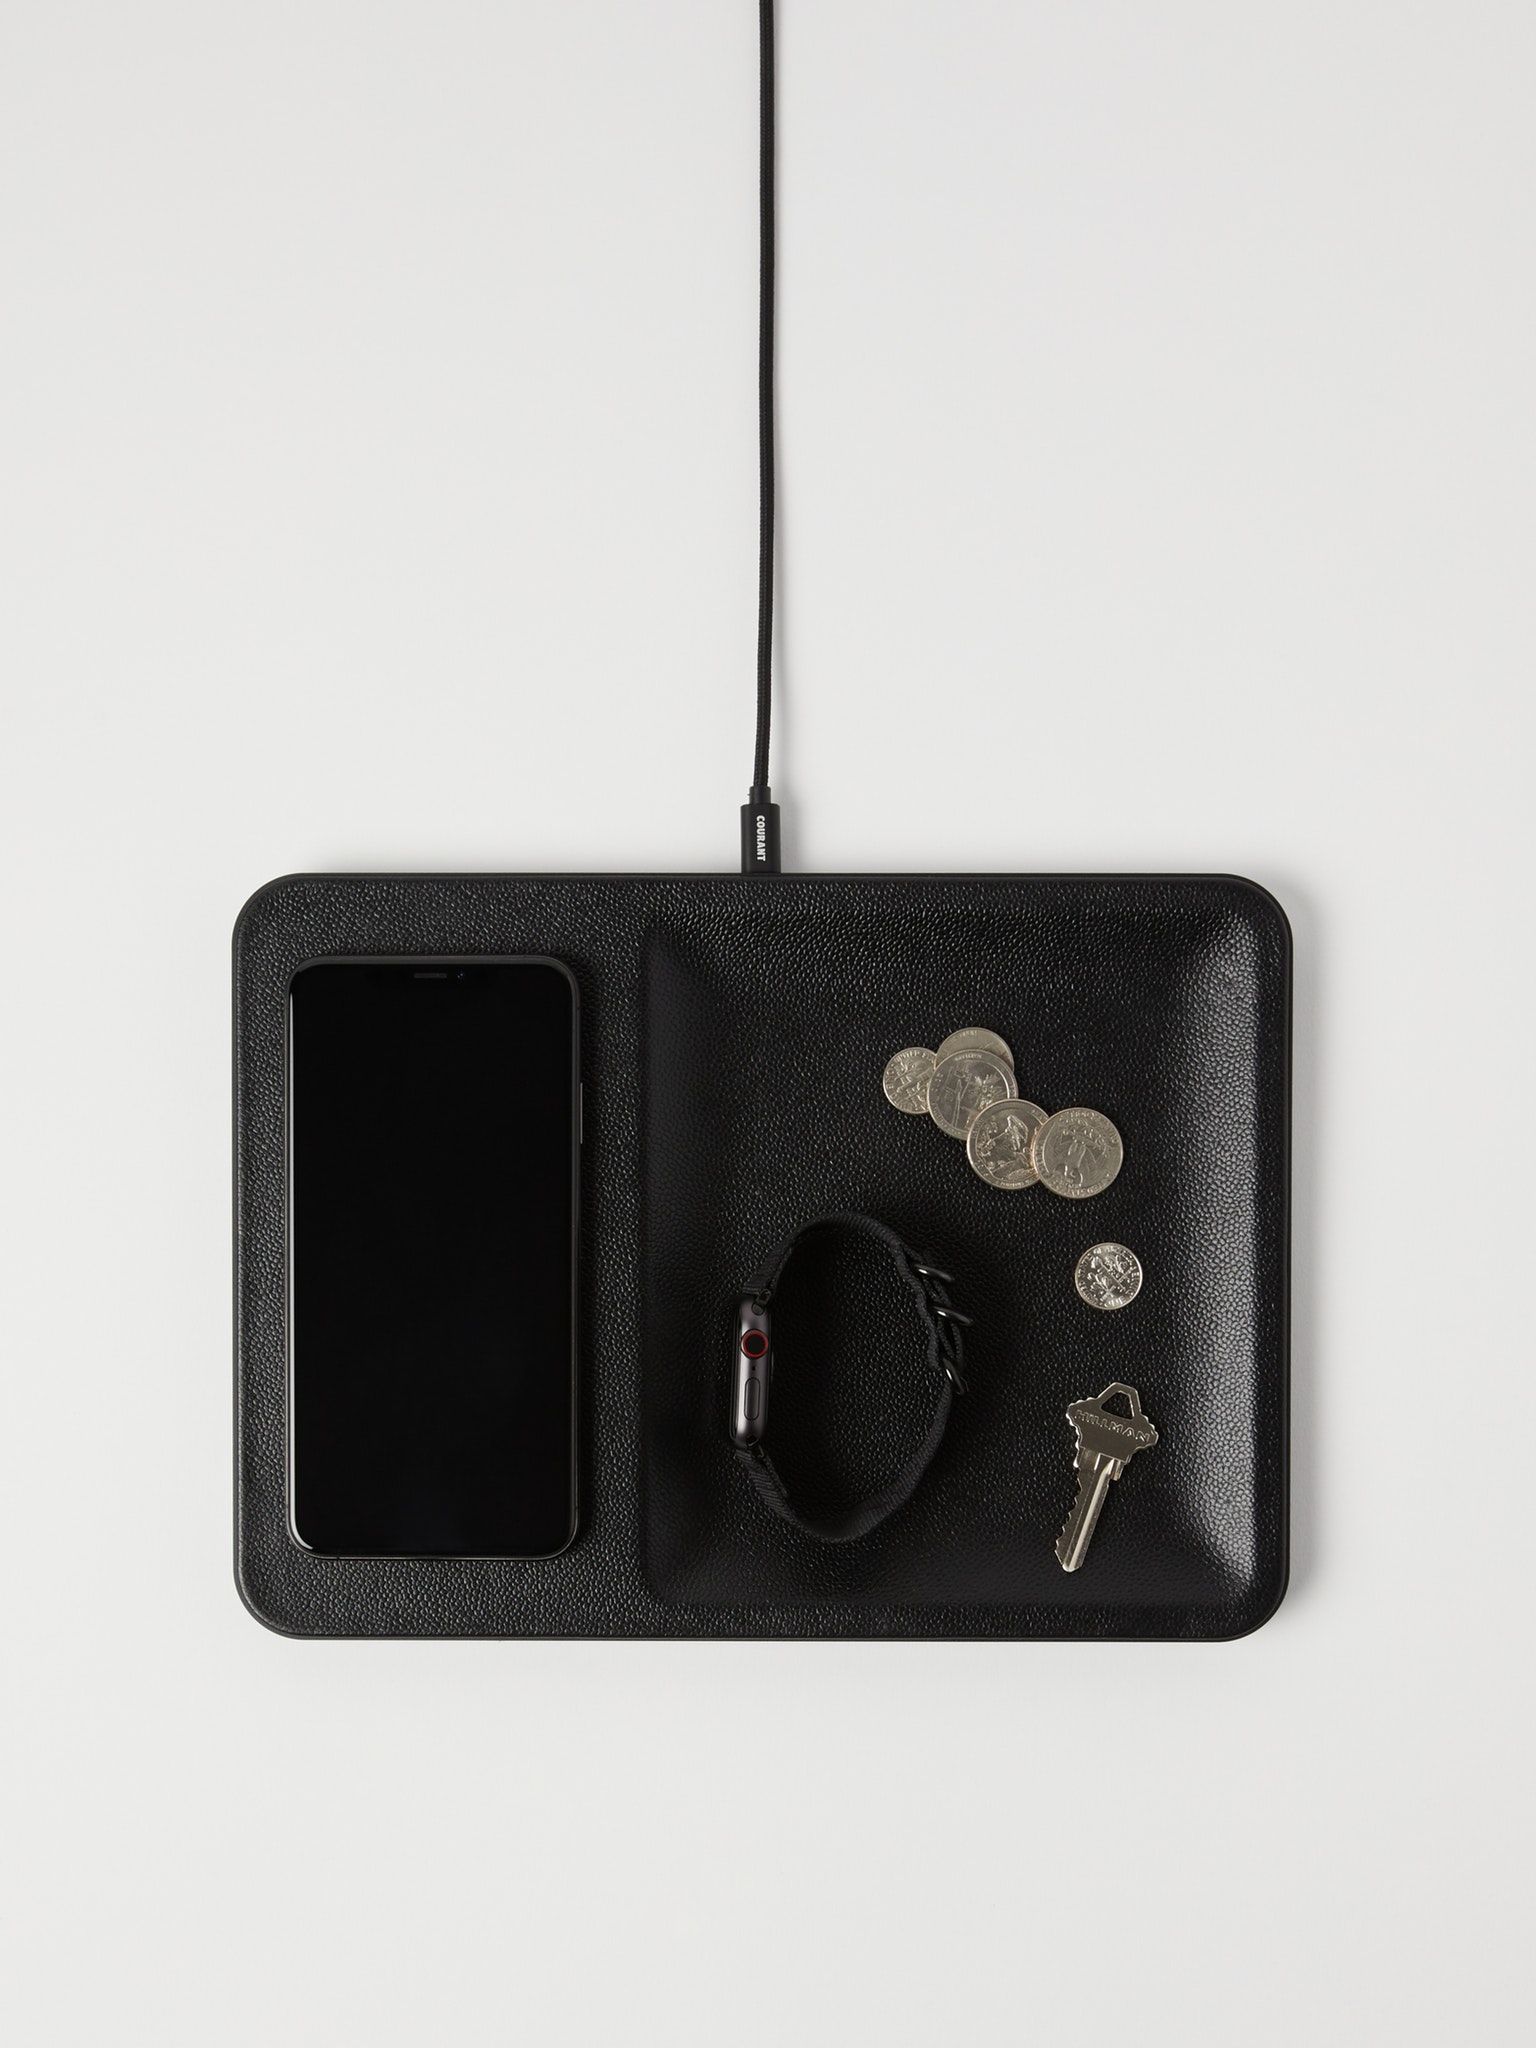 Courant Catch:3 Charging Pad and Tray